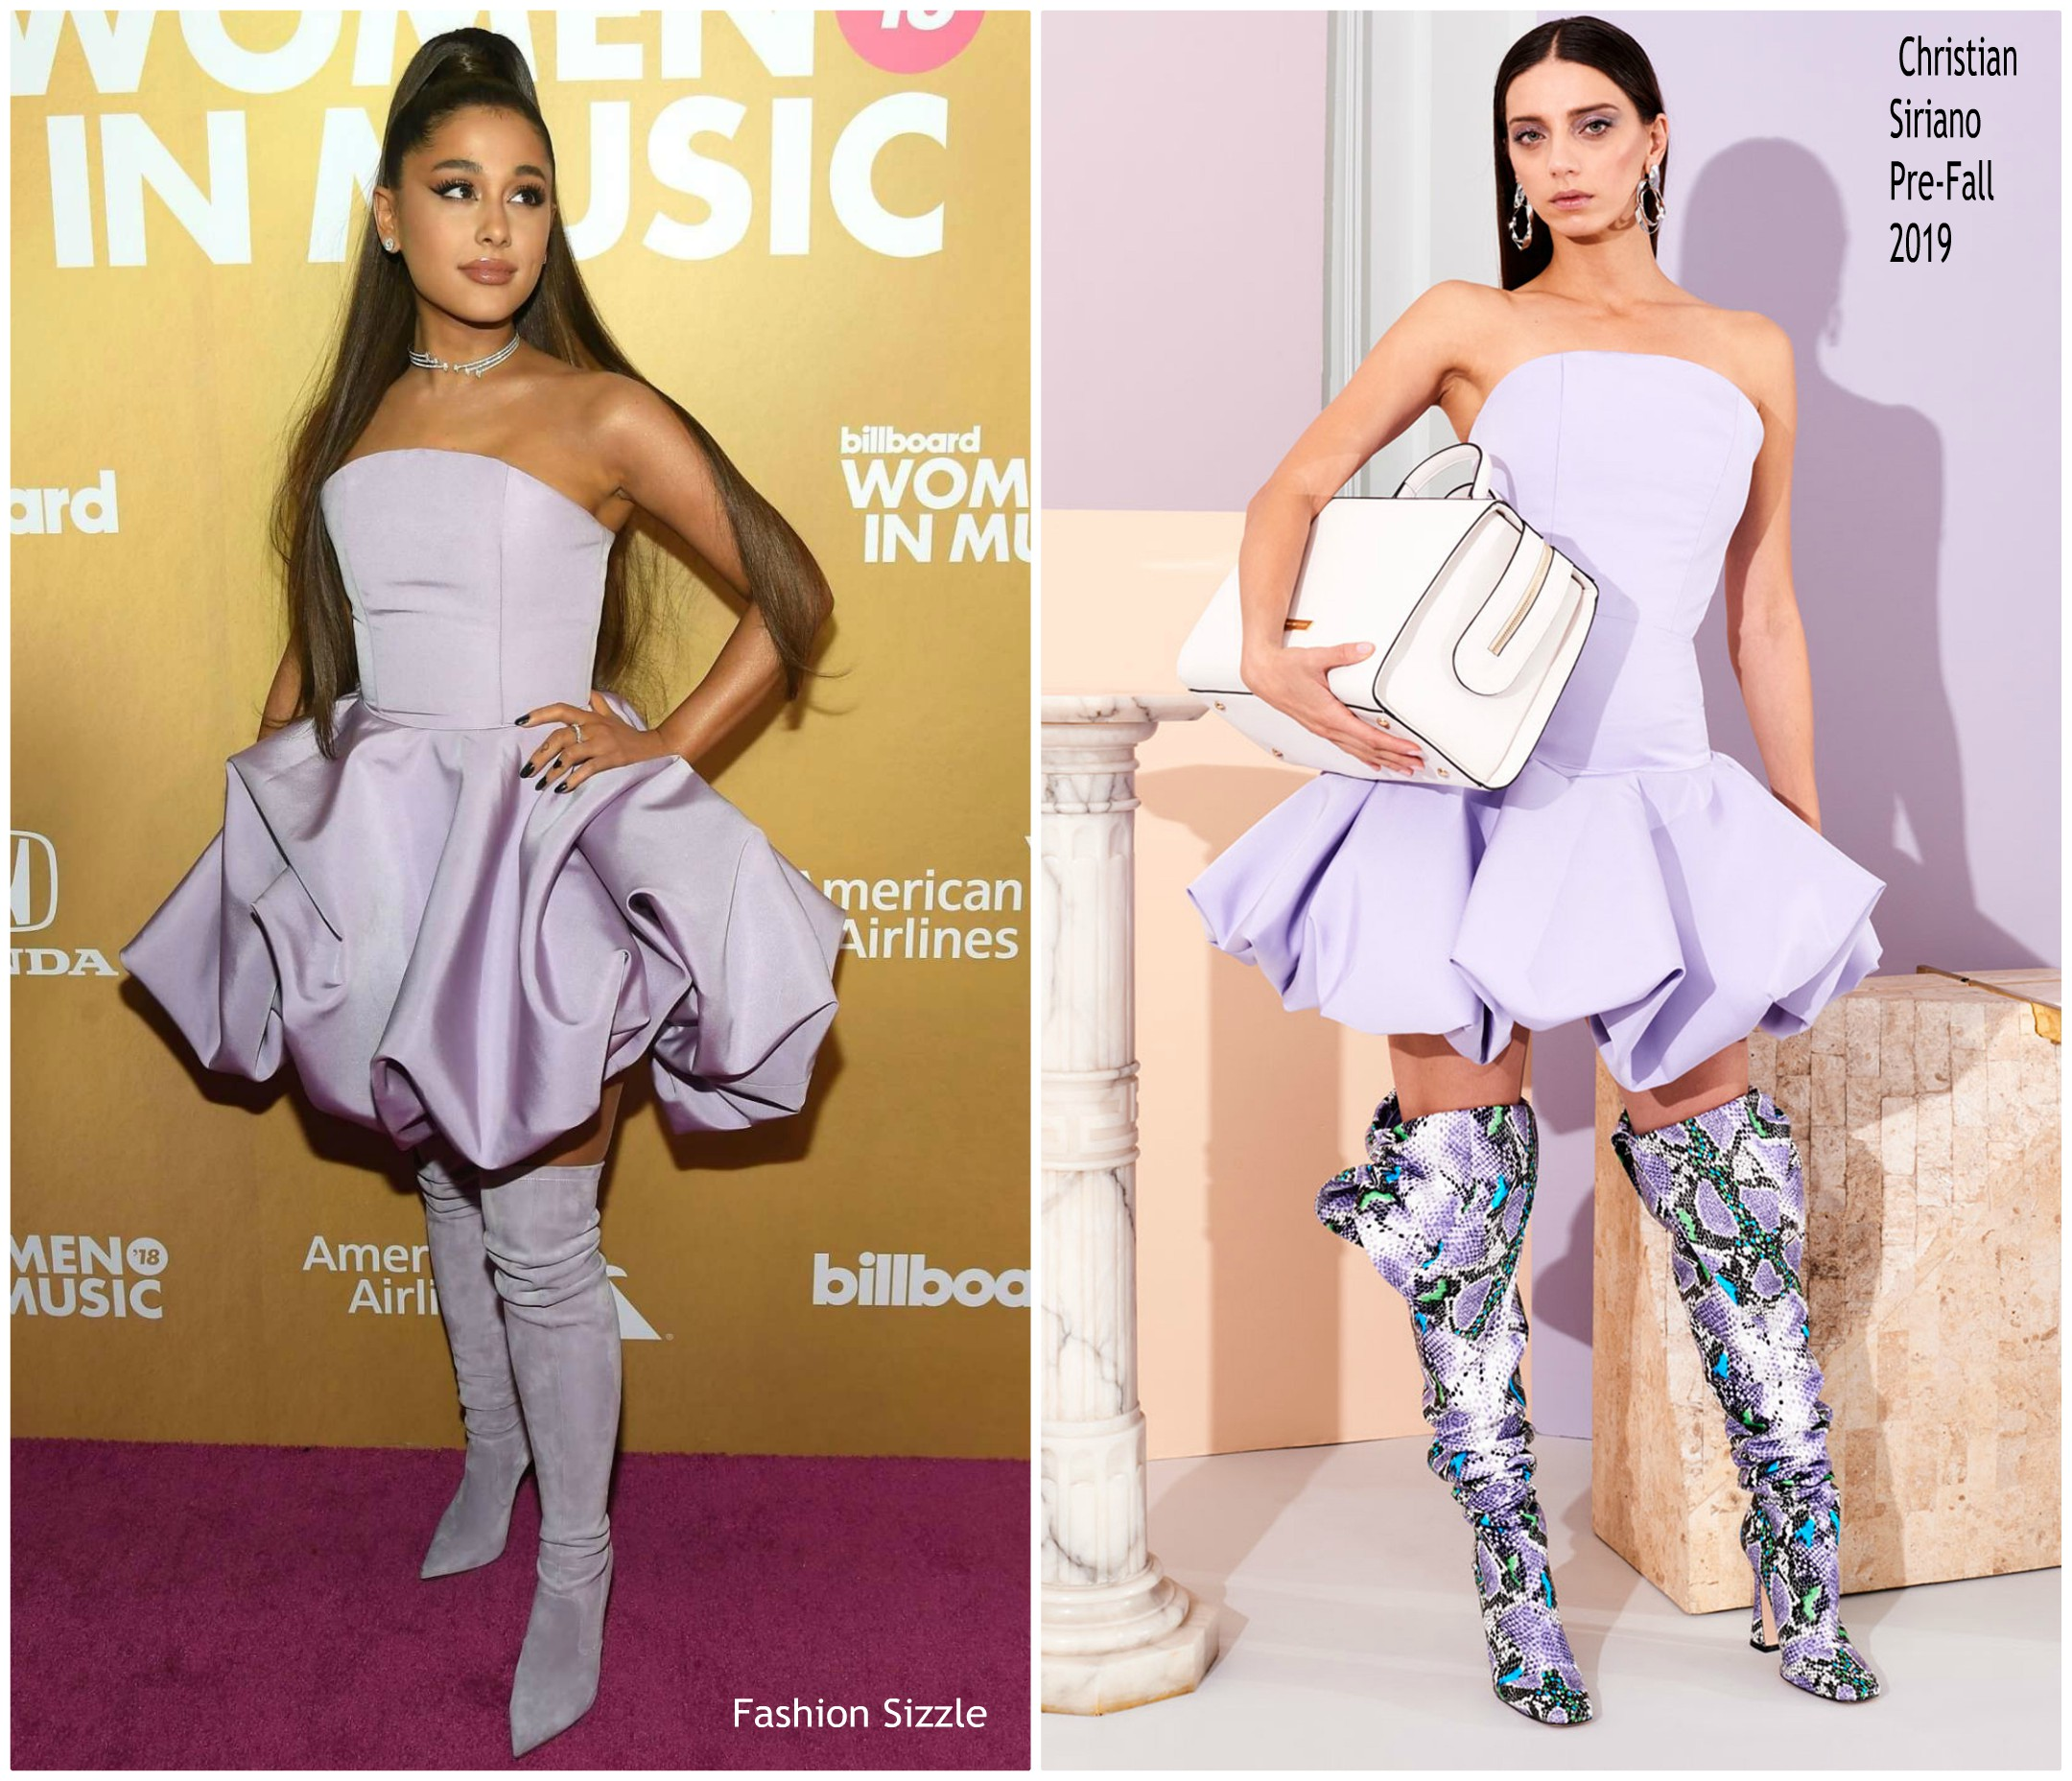 ariana-grande-in-christian-siriano-billboard-women-in-music-2018